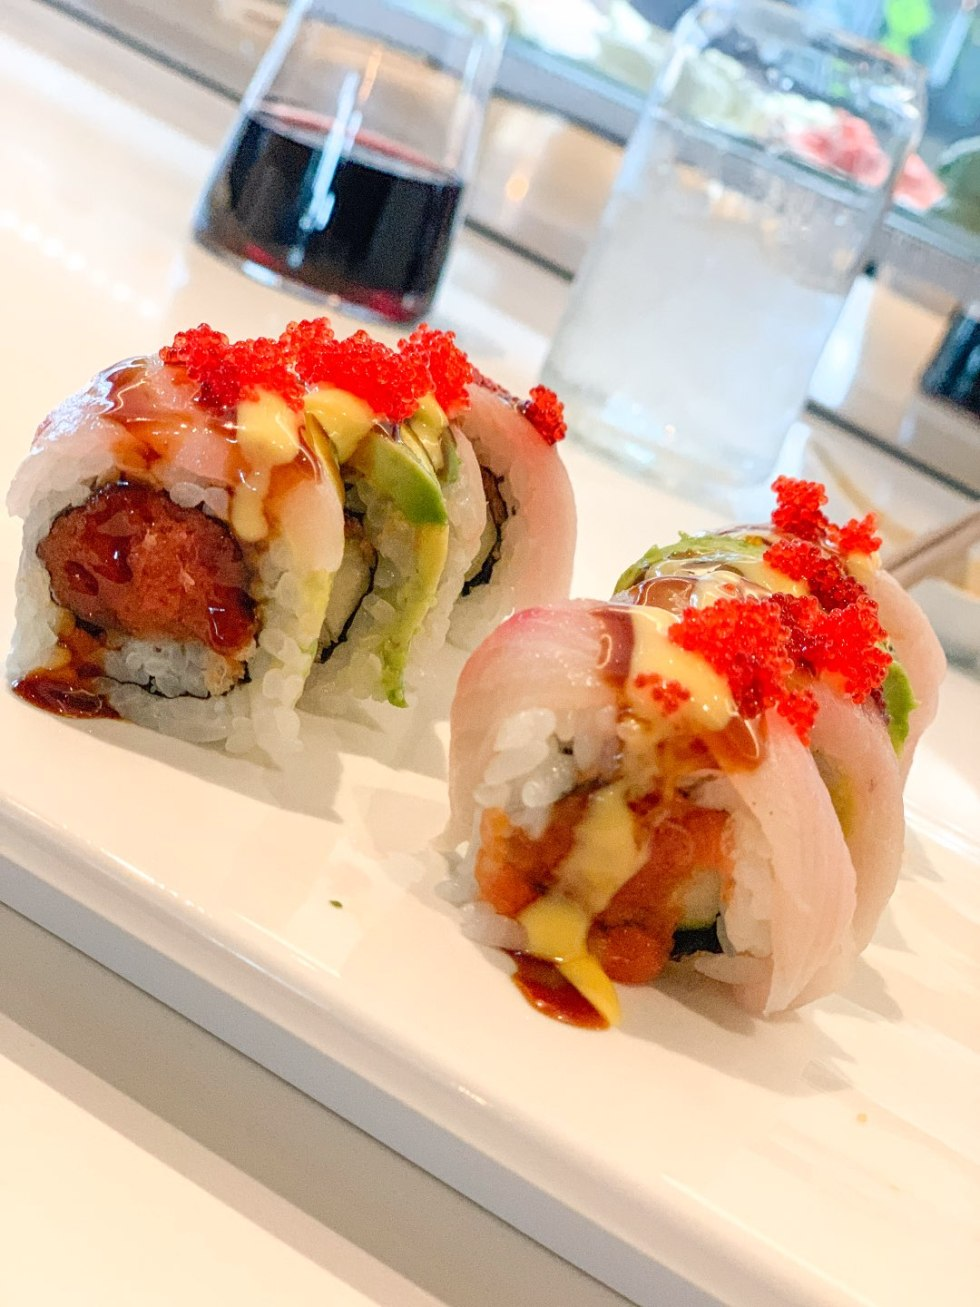 Welcome August + July 2019 Instagram Roundup - I'm Fixin' To - @mbg0112 | Welcome August + July 2019 Instagram Roundup by popular North Carolina life and style blog, I'm Fixin' To: image of sushi at Osha Thai Kitchen and Sushi.